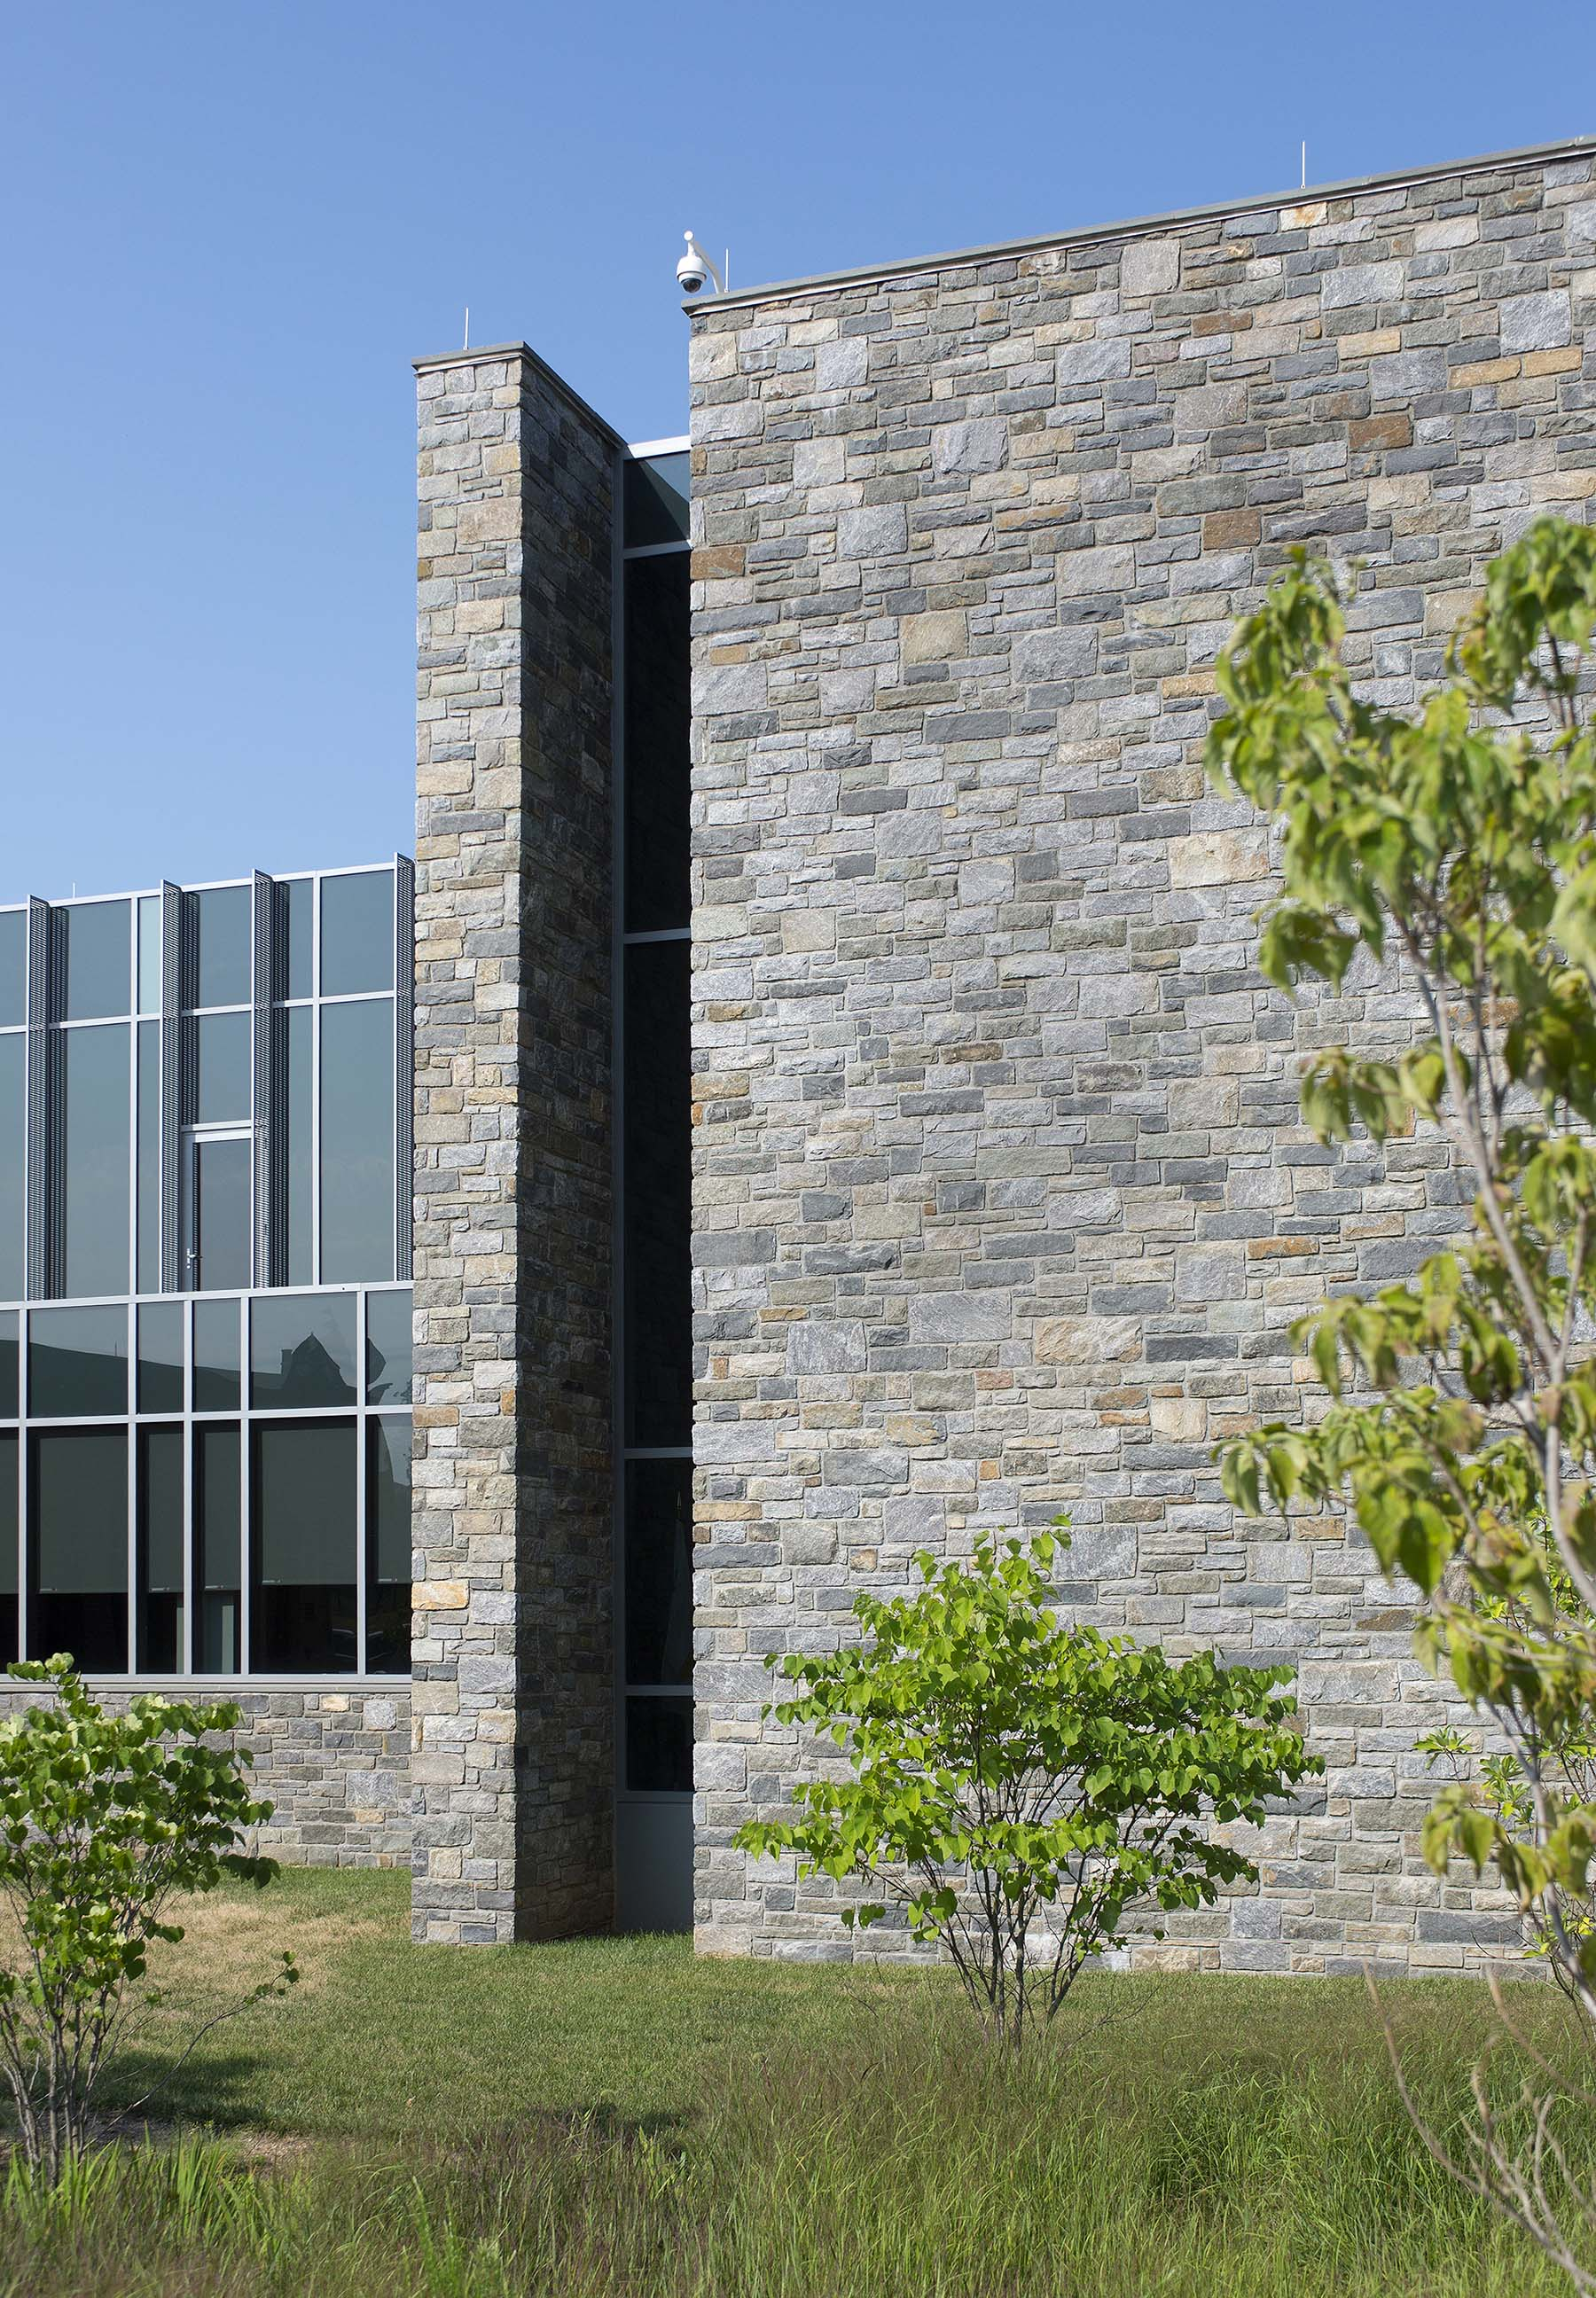 stone veneer building at USCG Headquarters